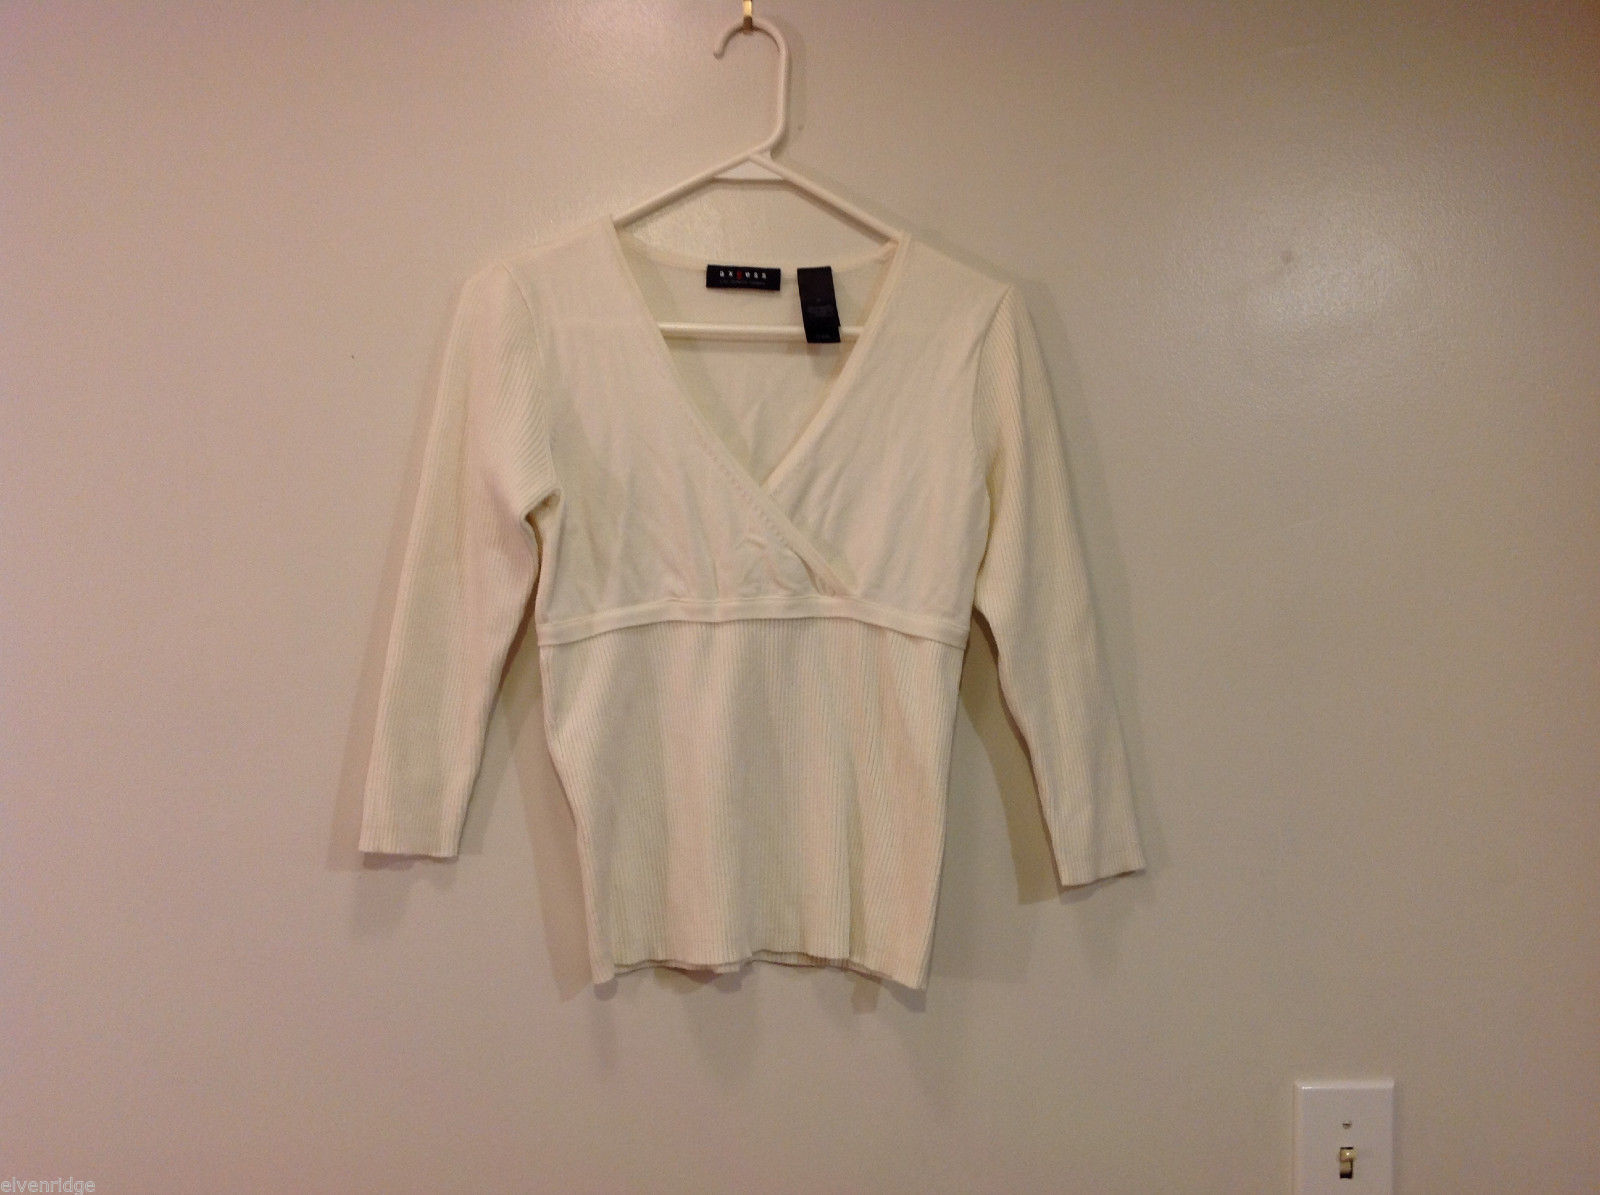 Axcess White Stretch V-neck Empire Waist 3/4 sleeve Top Blouse Pullover, Size M